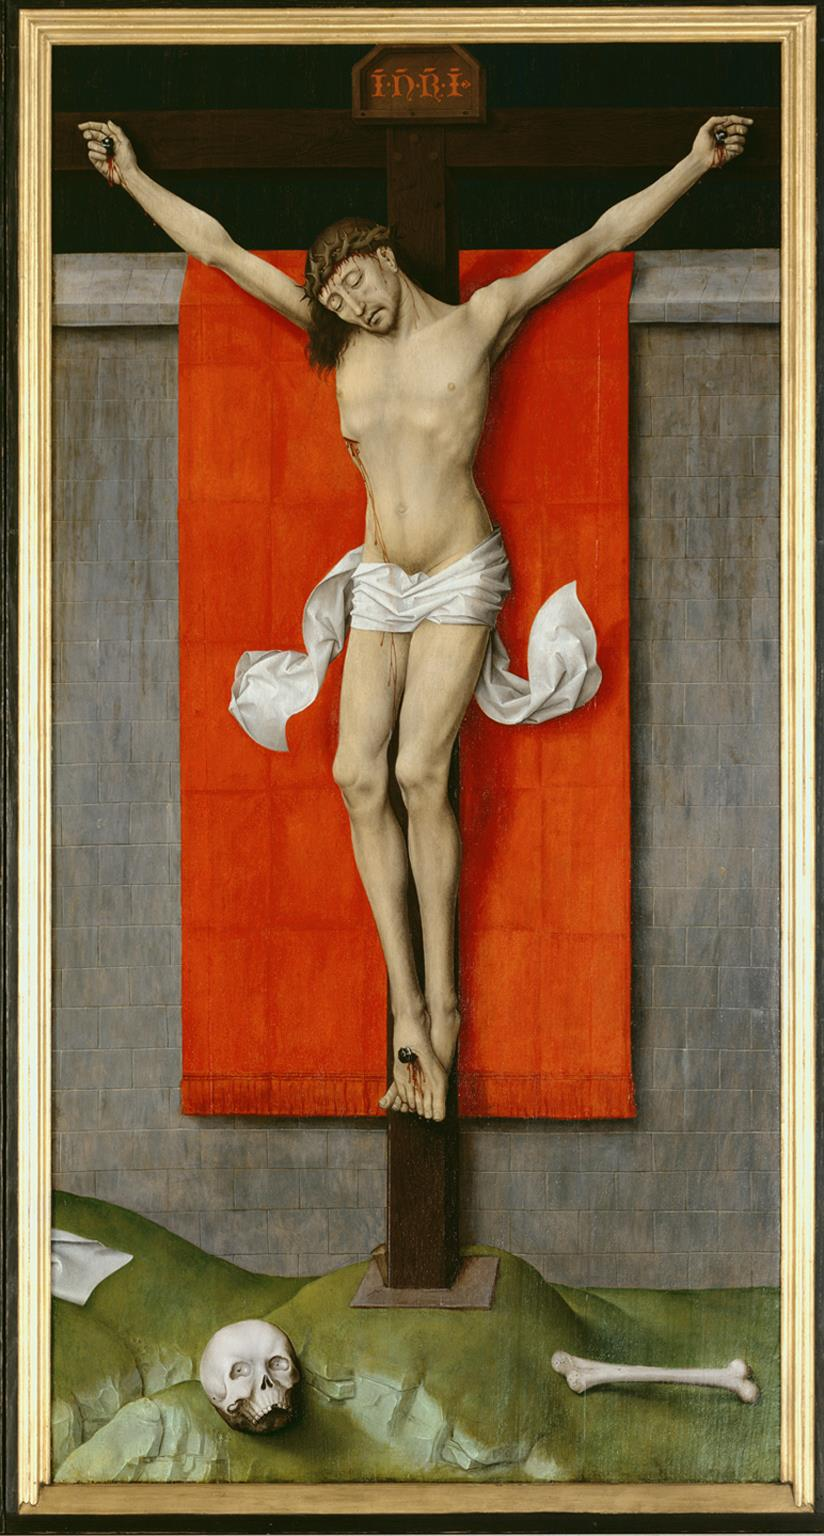 Fig. 2 and 3: Rogier van der Weyden (1399-1464), The Crucifixion, with the Virgin and Saint John the Evangelist Mourning , c. 1560, John G. Johnson Collection, 1917, Philadelphia Museum of Art